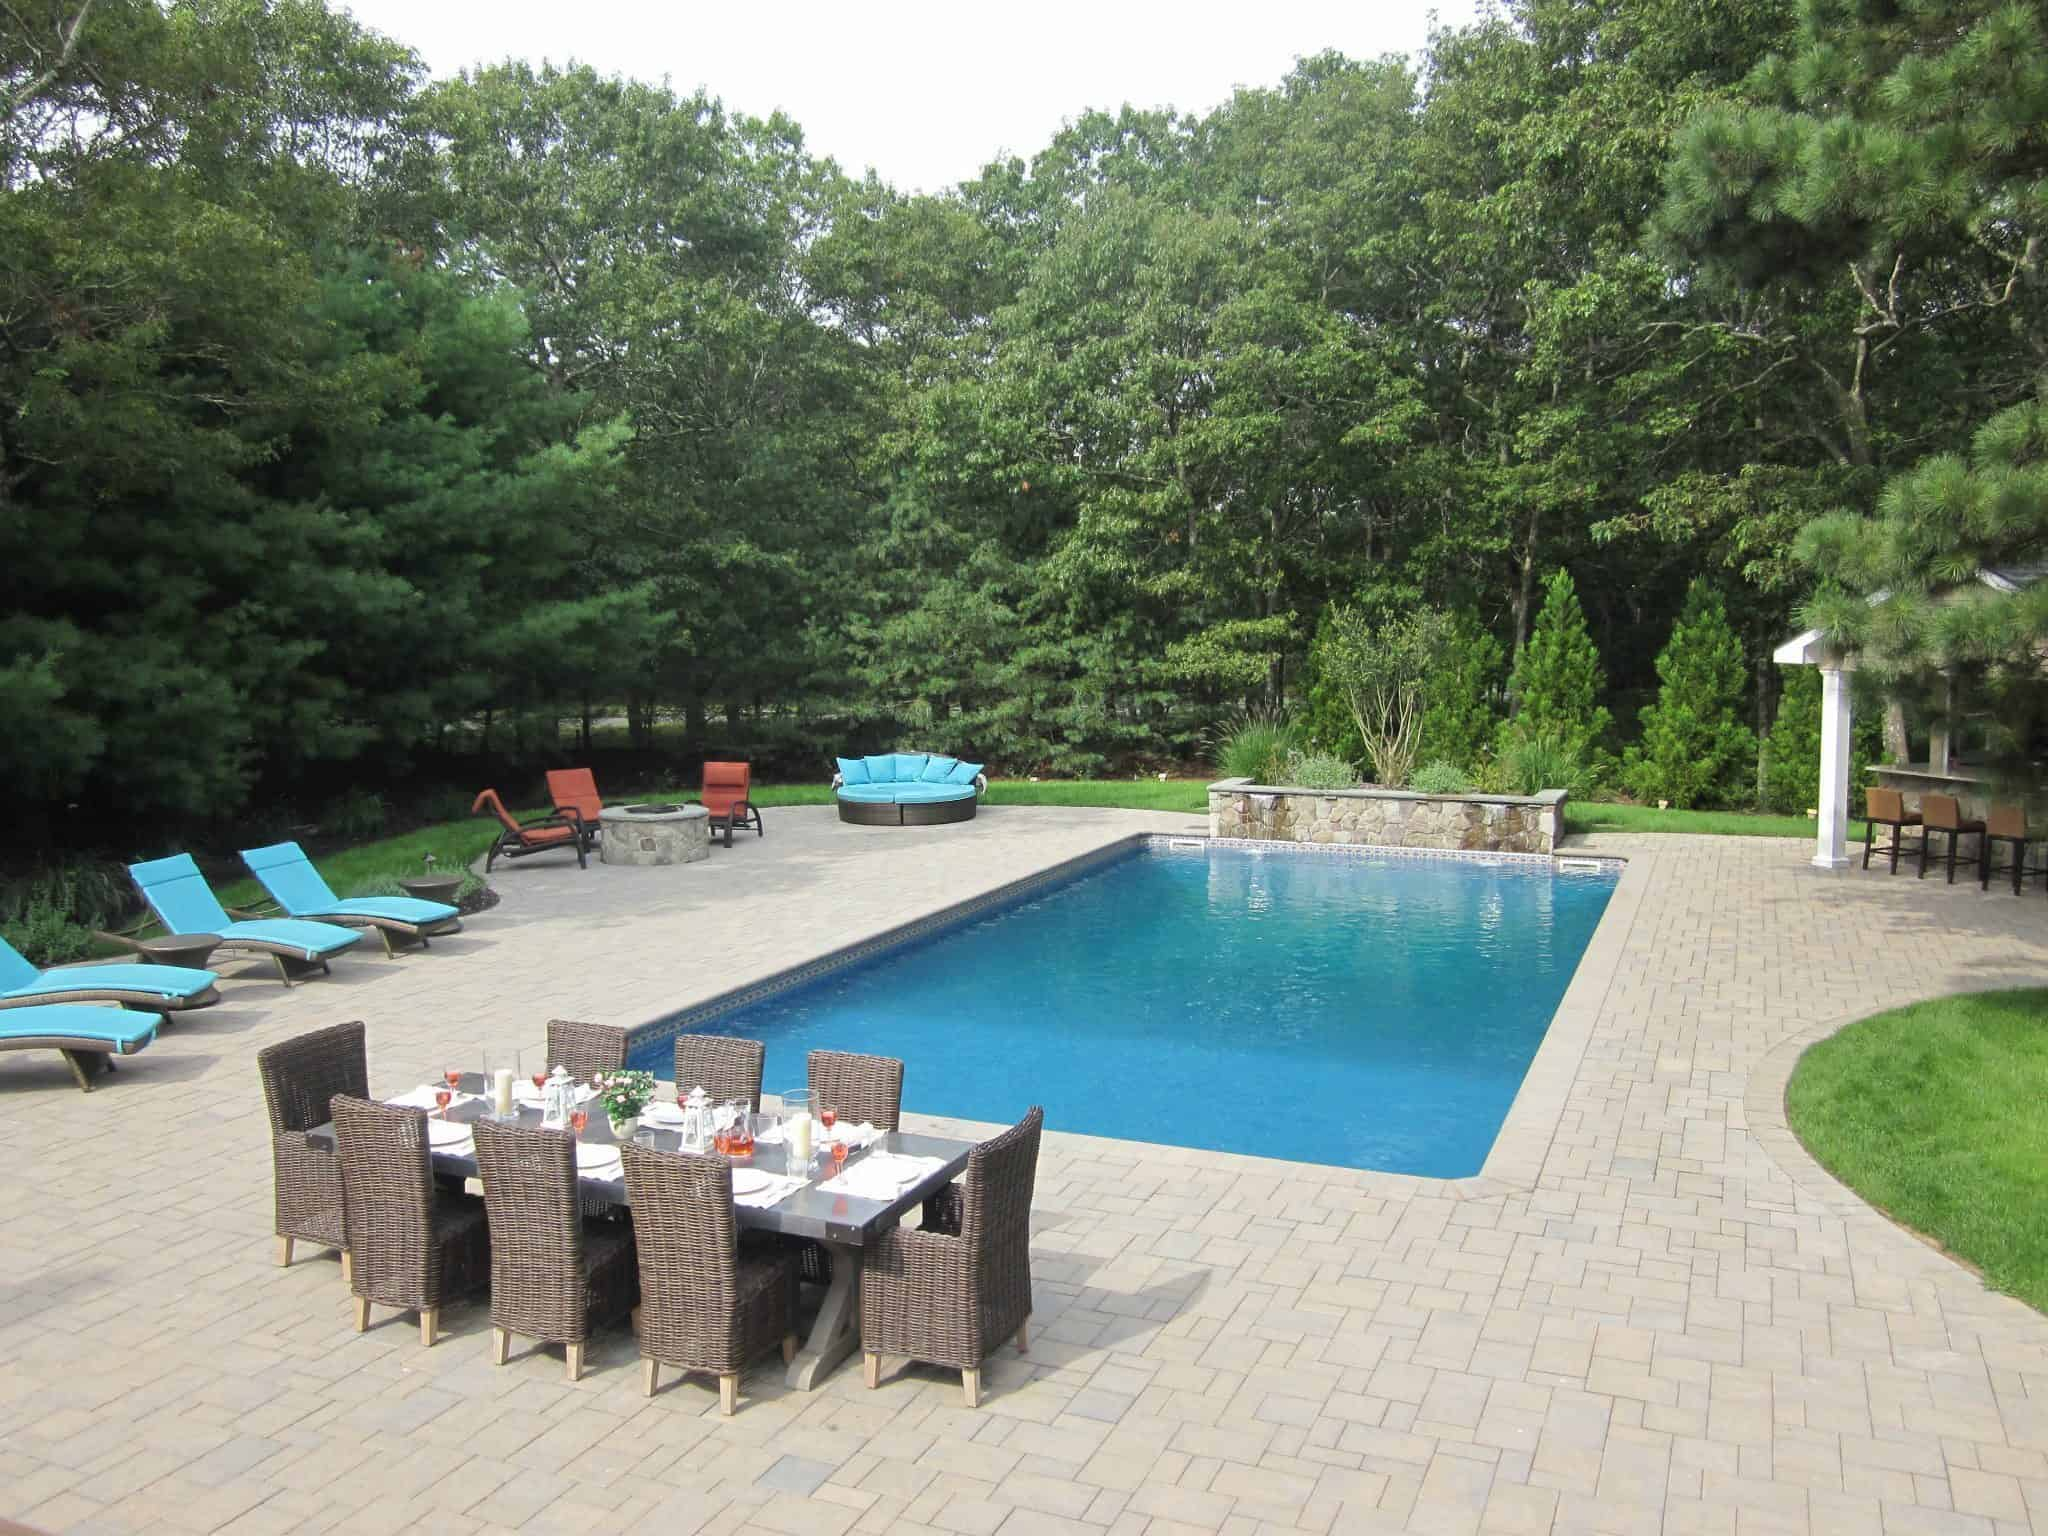 18' x 36' Pool with Sheer Descents and LED color light - Hampton Bays, Long Island NY